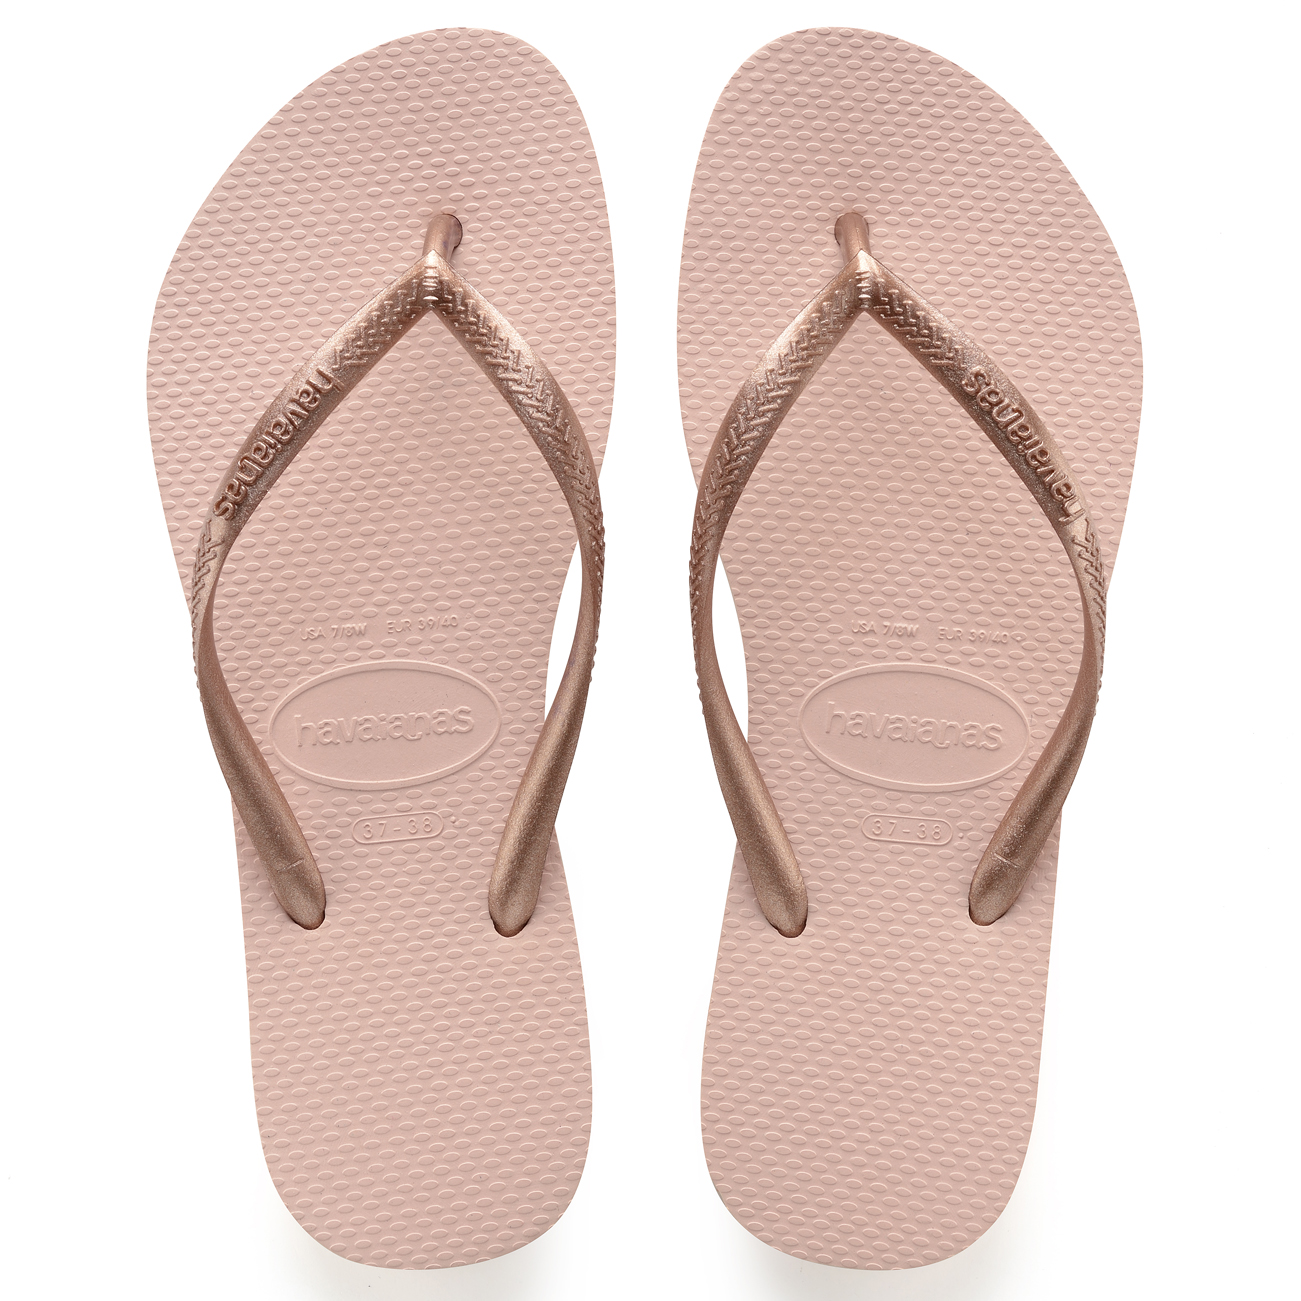 22063a0d27612 Details about Ladies Havaianas Slim Ballet Toe Post Thong Sand Holiday  Beach Sandals All Sizes